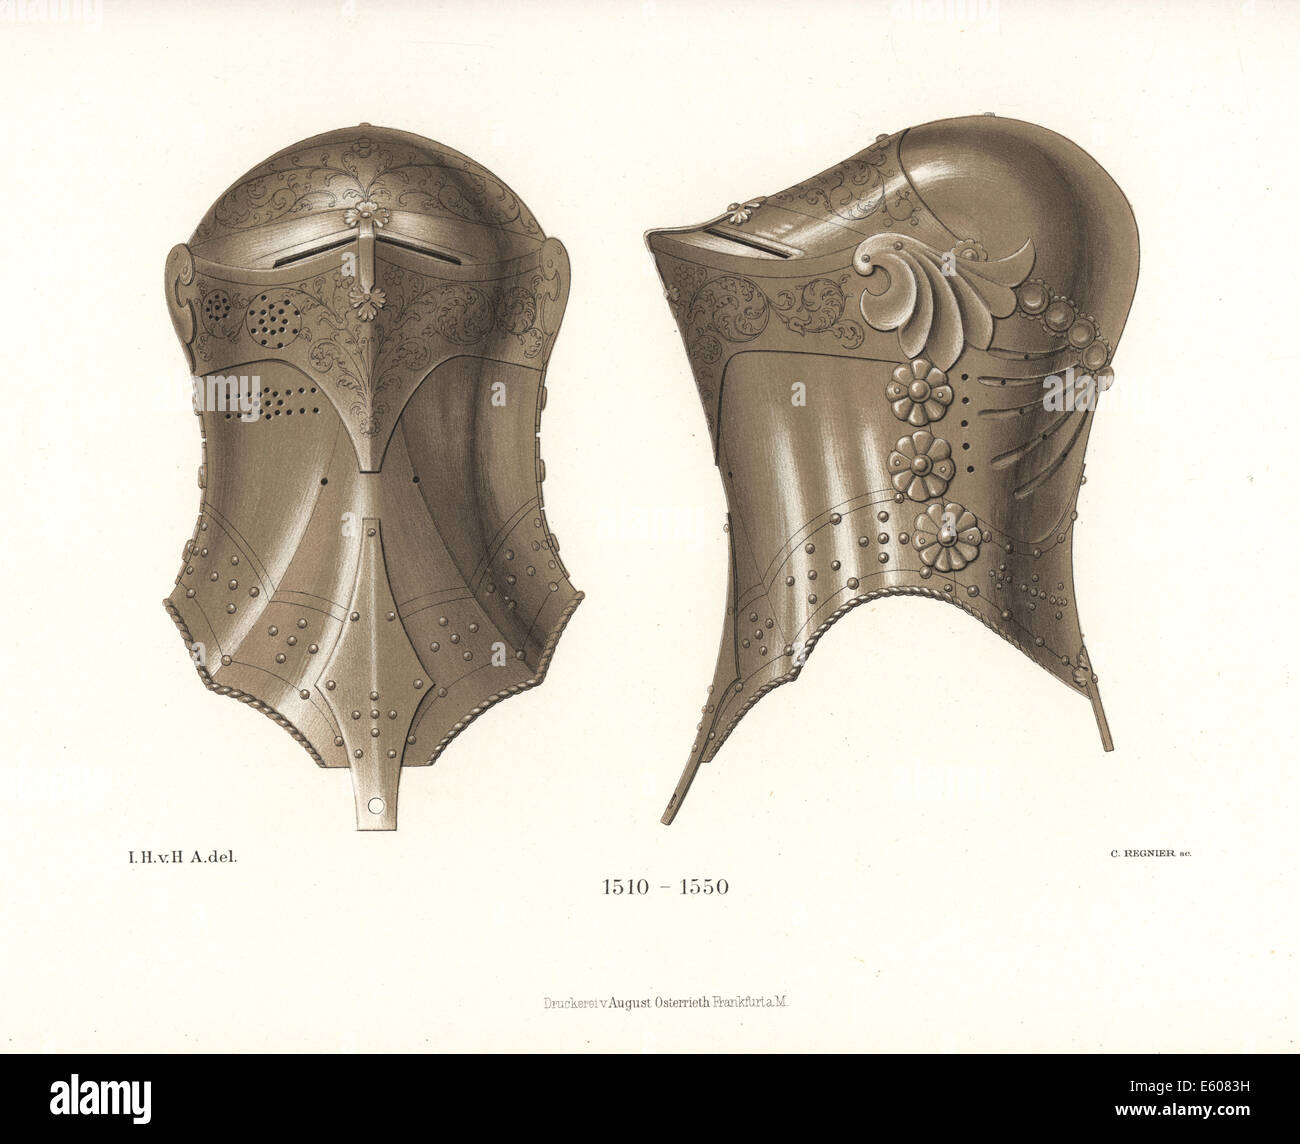 German frogmouth helm, 16th century, used in the Stechen joust. - Stock Image